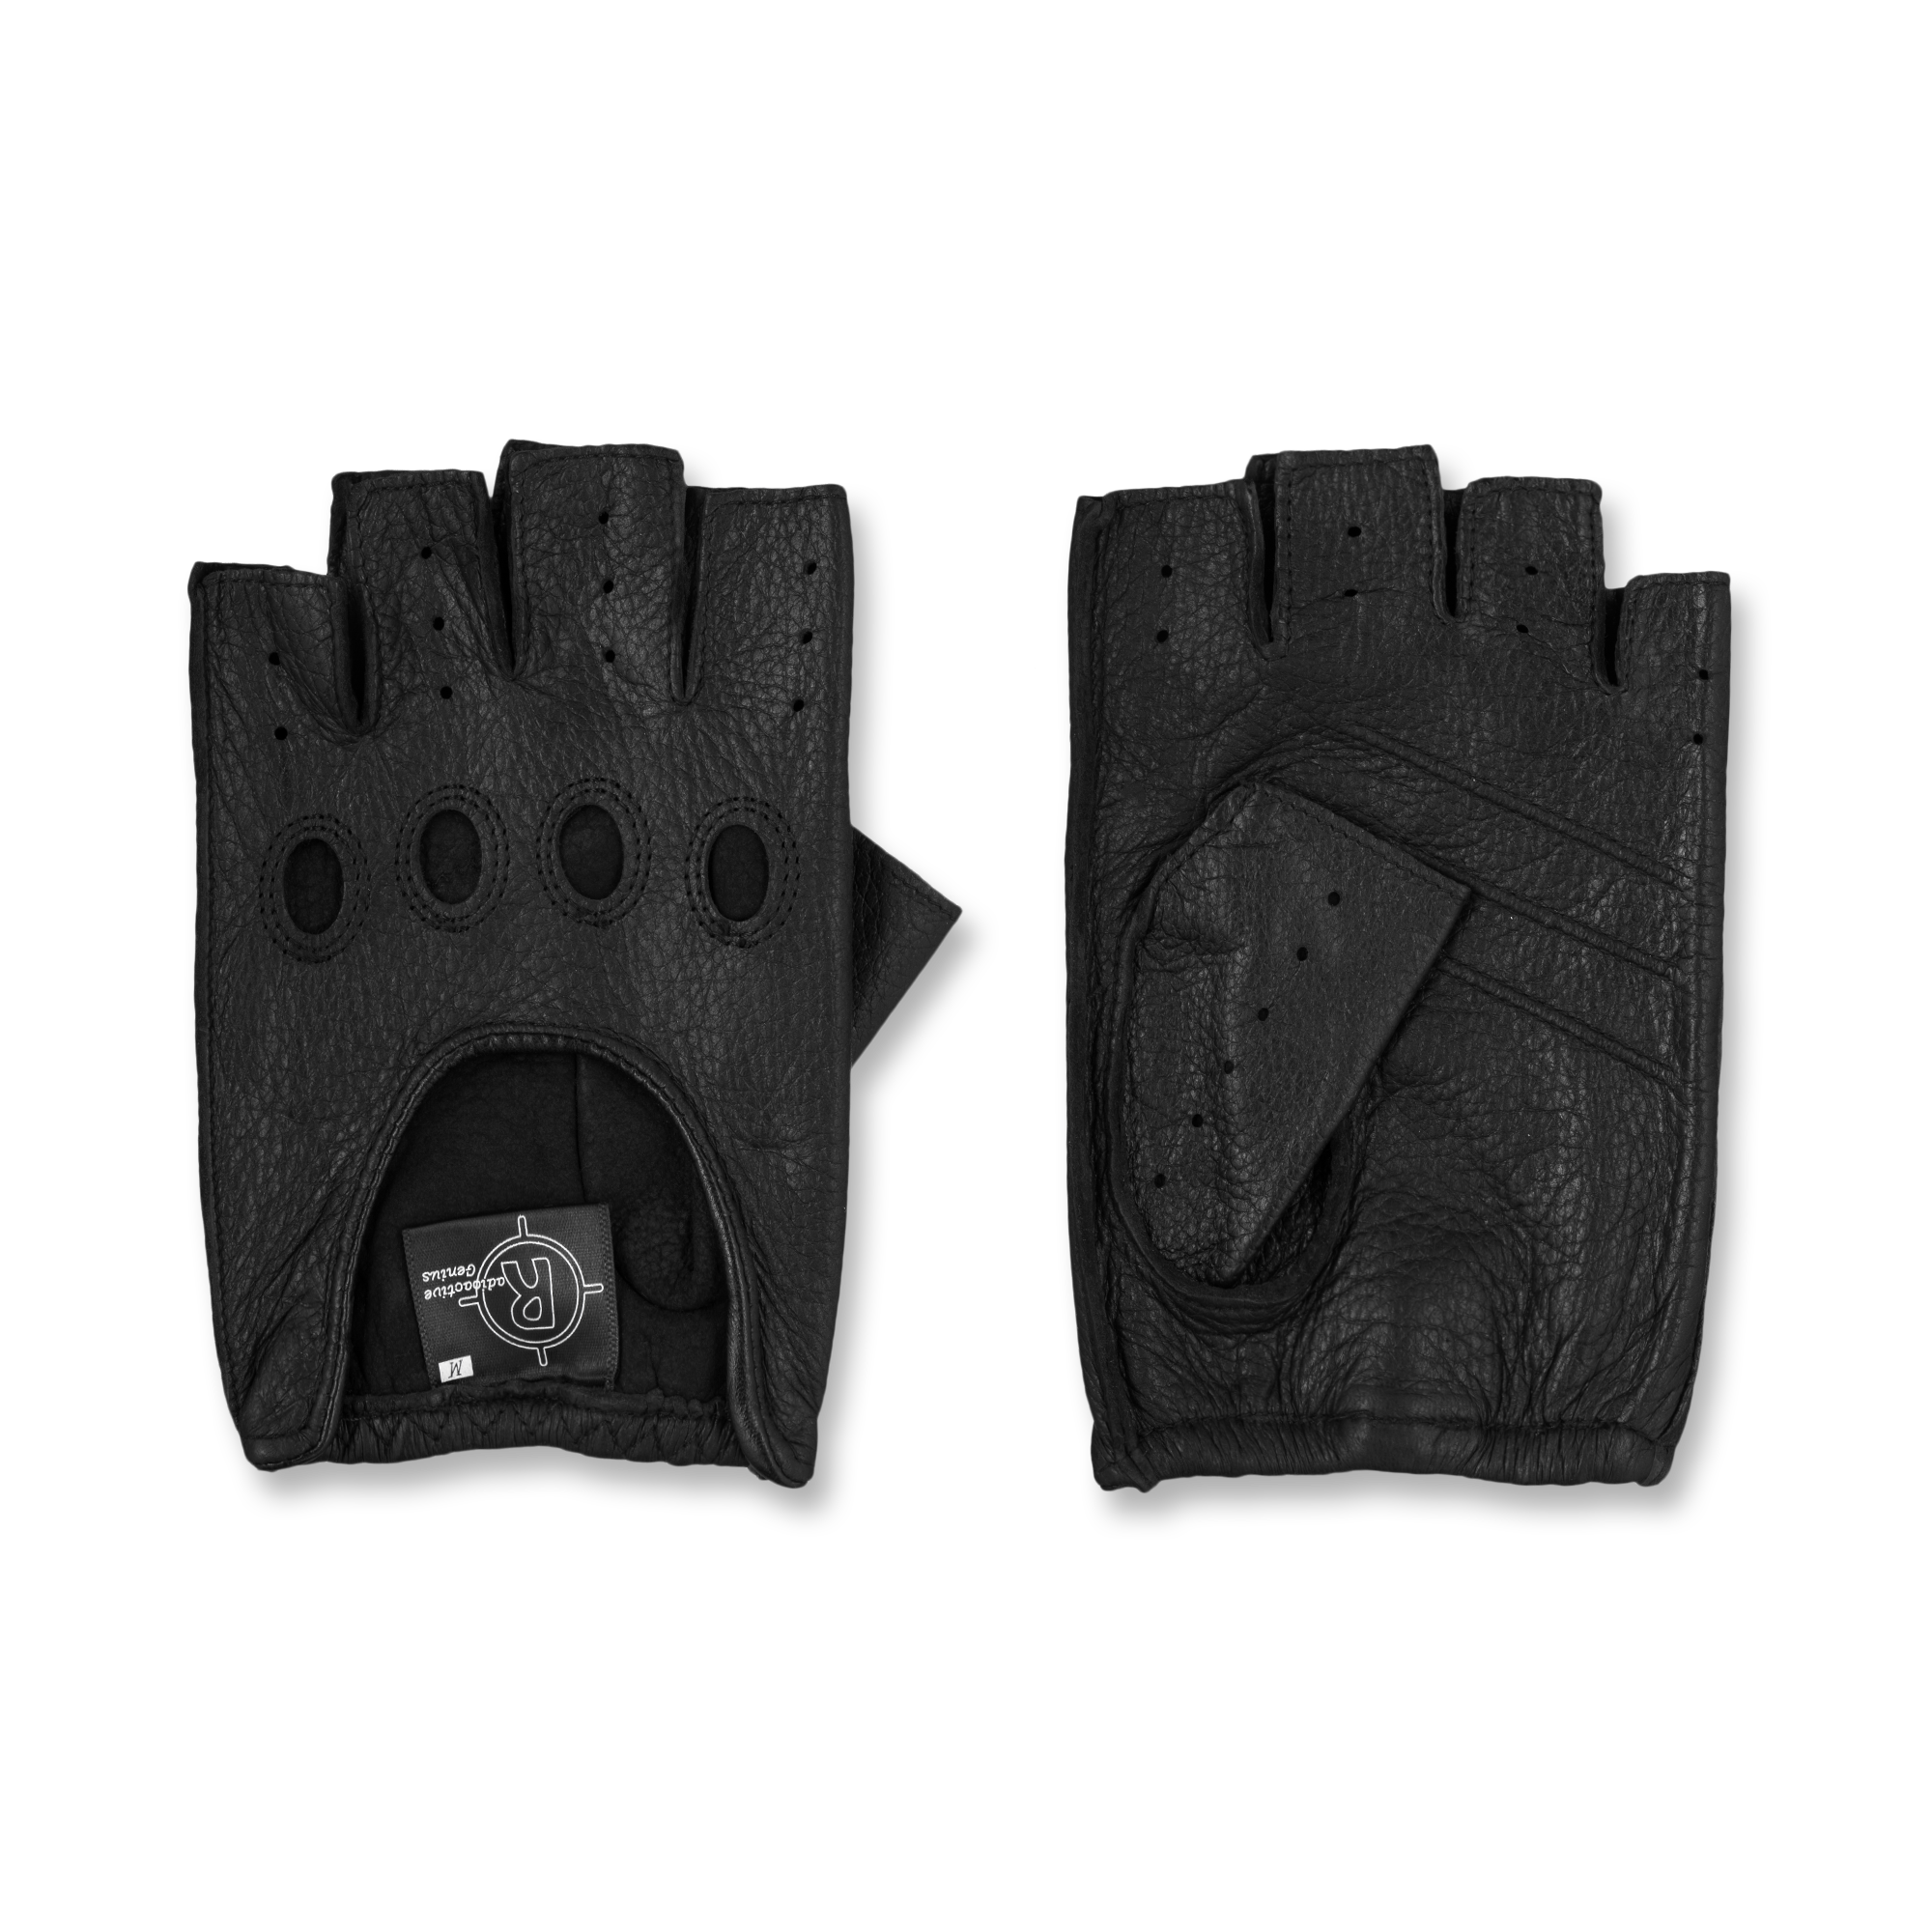 Gloves product image